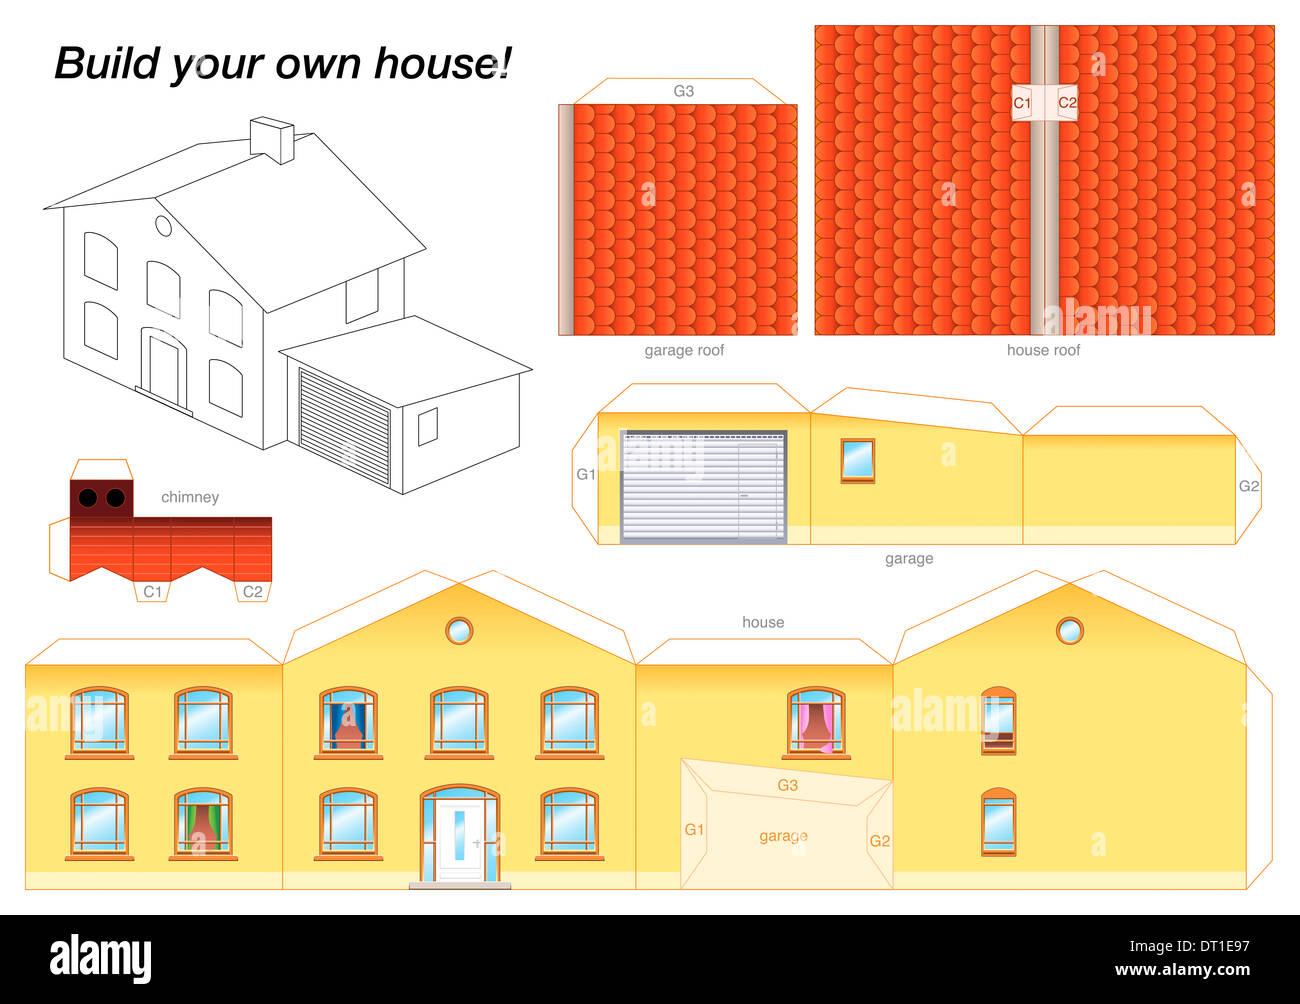 Good Paper Model Of A Yellow House With Garage   Easy To Make   Print It On  Heavy Paper, Cut The Pieces Out And Glue Them Together.